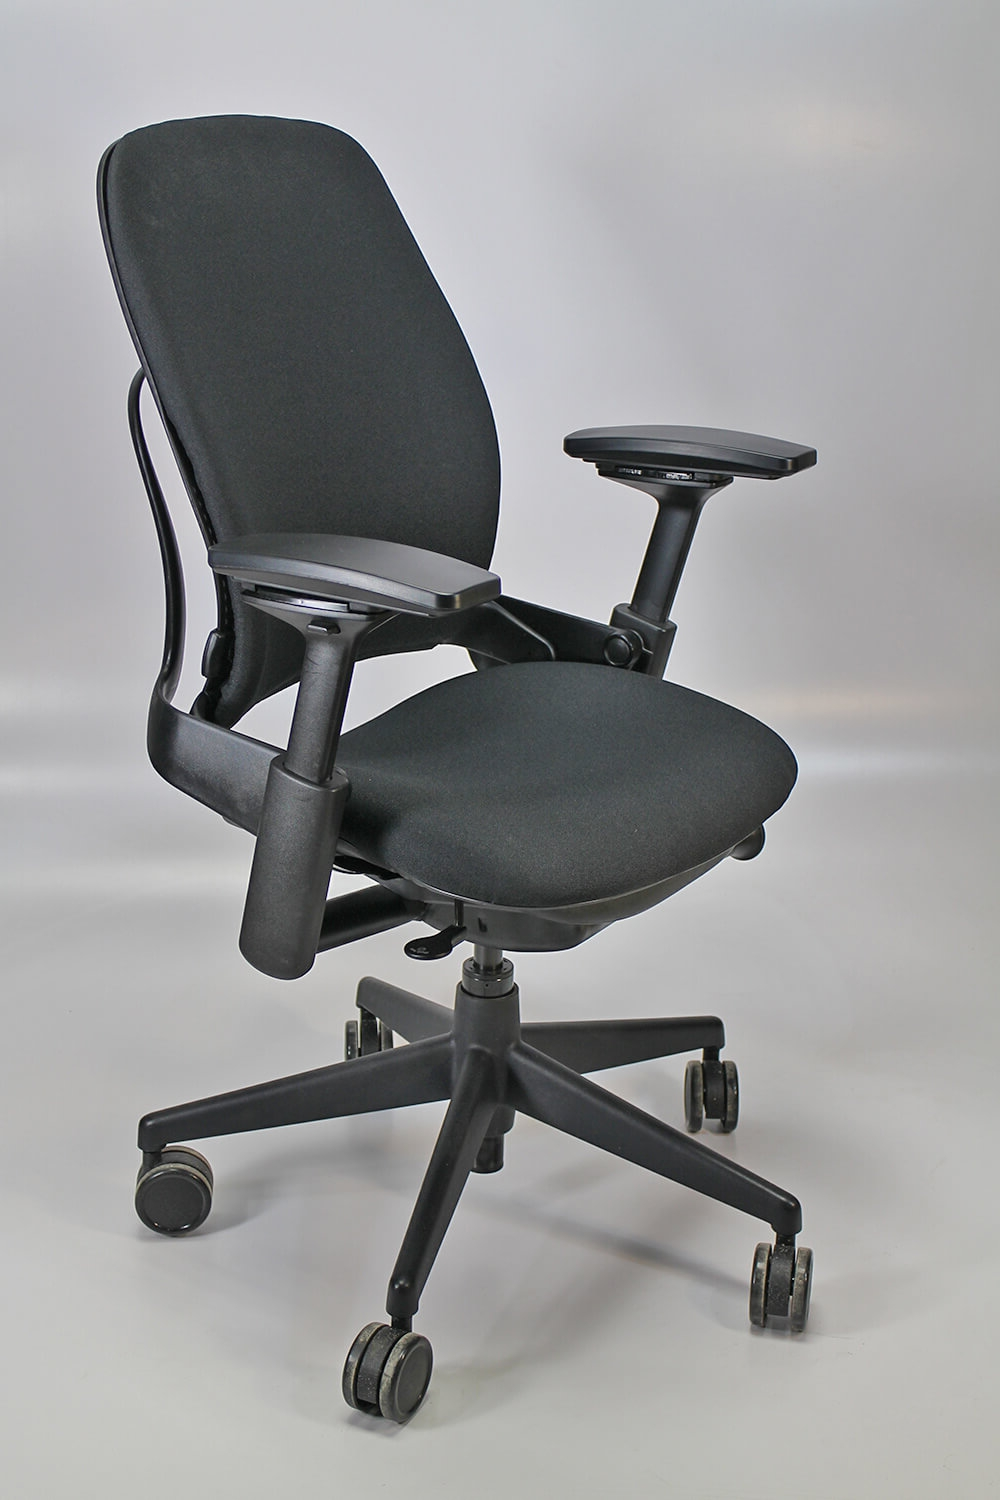 steelcase-chairs-steelcase-leap-v2.jpg